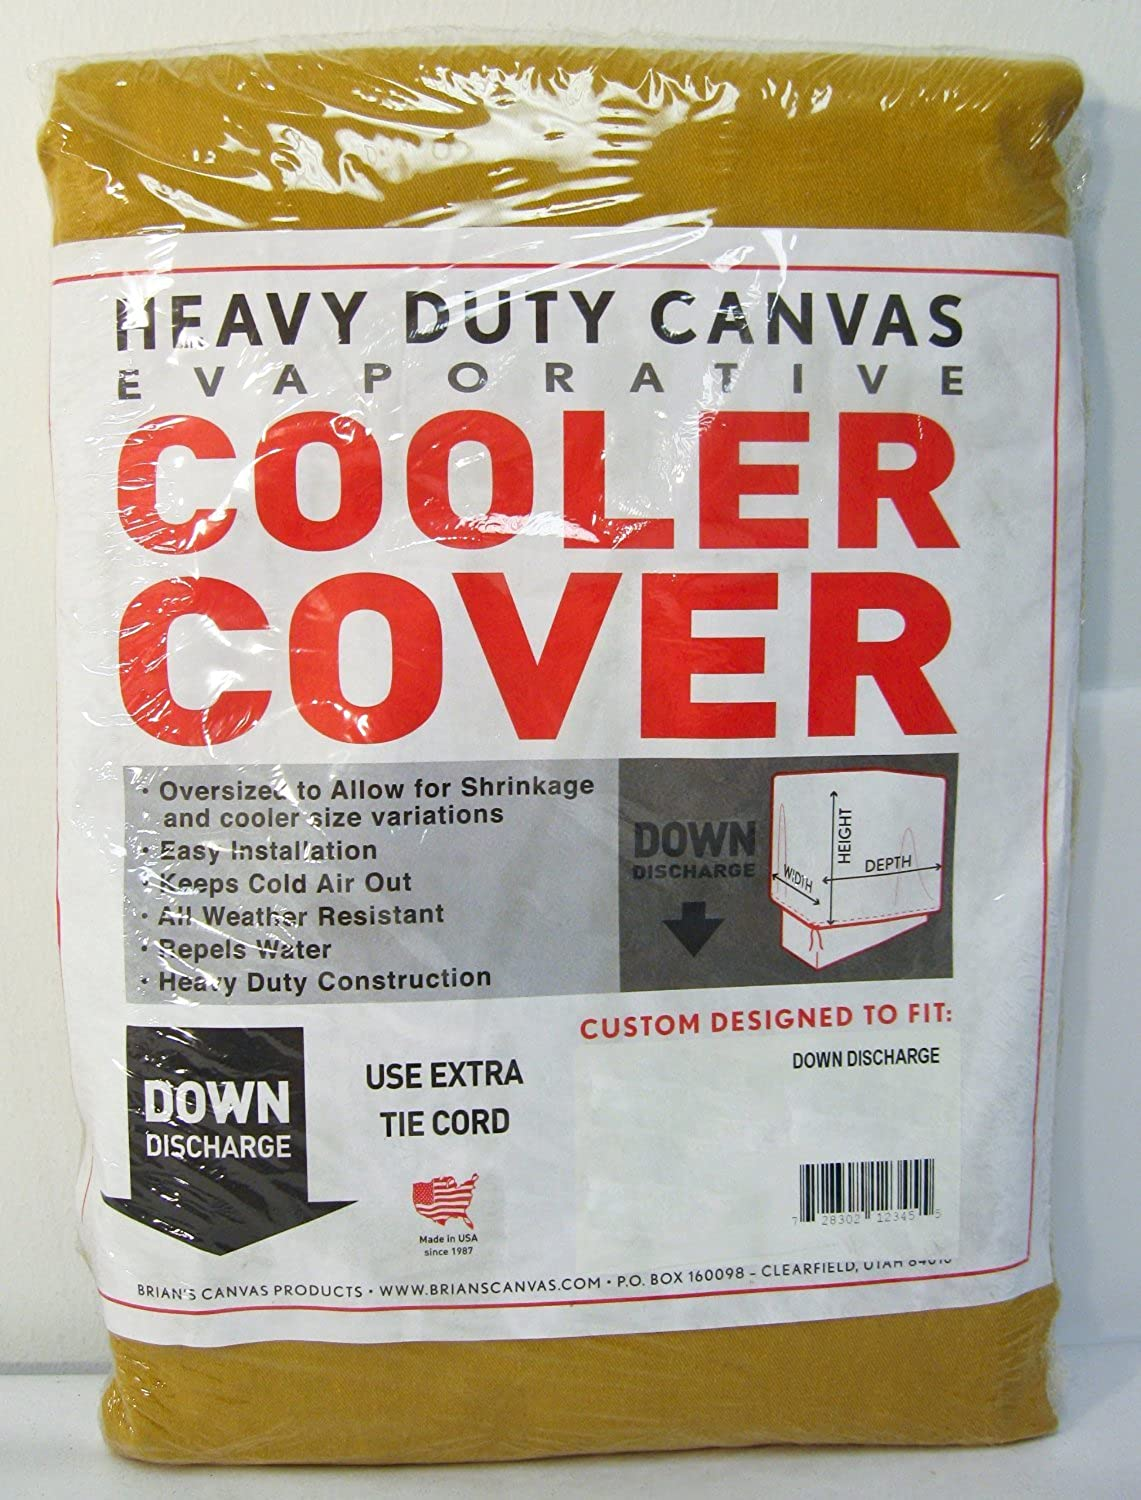 42 in. x 45 in. x 35 in. Evaporative Cooler Down Discharge Cover